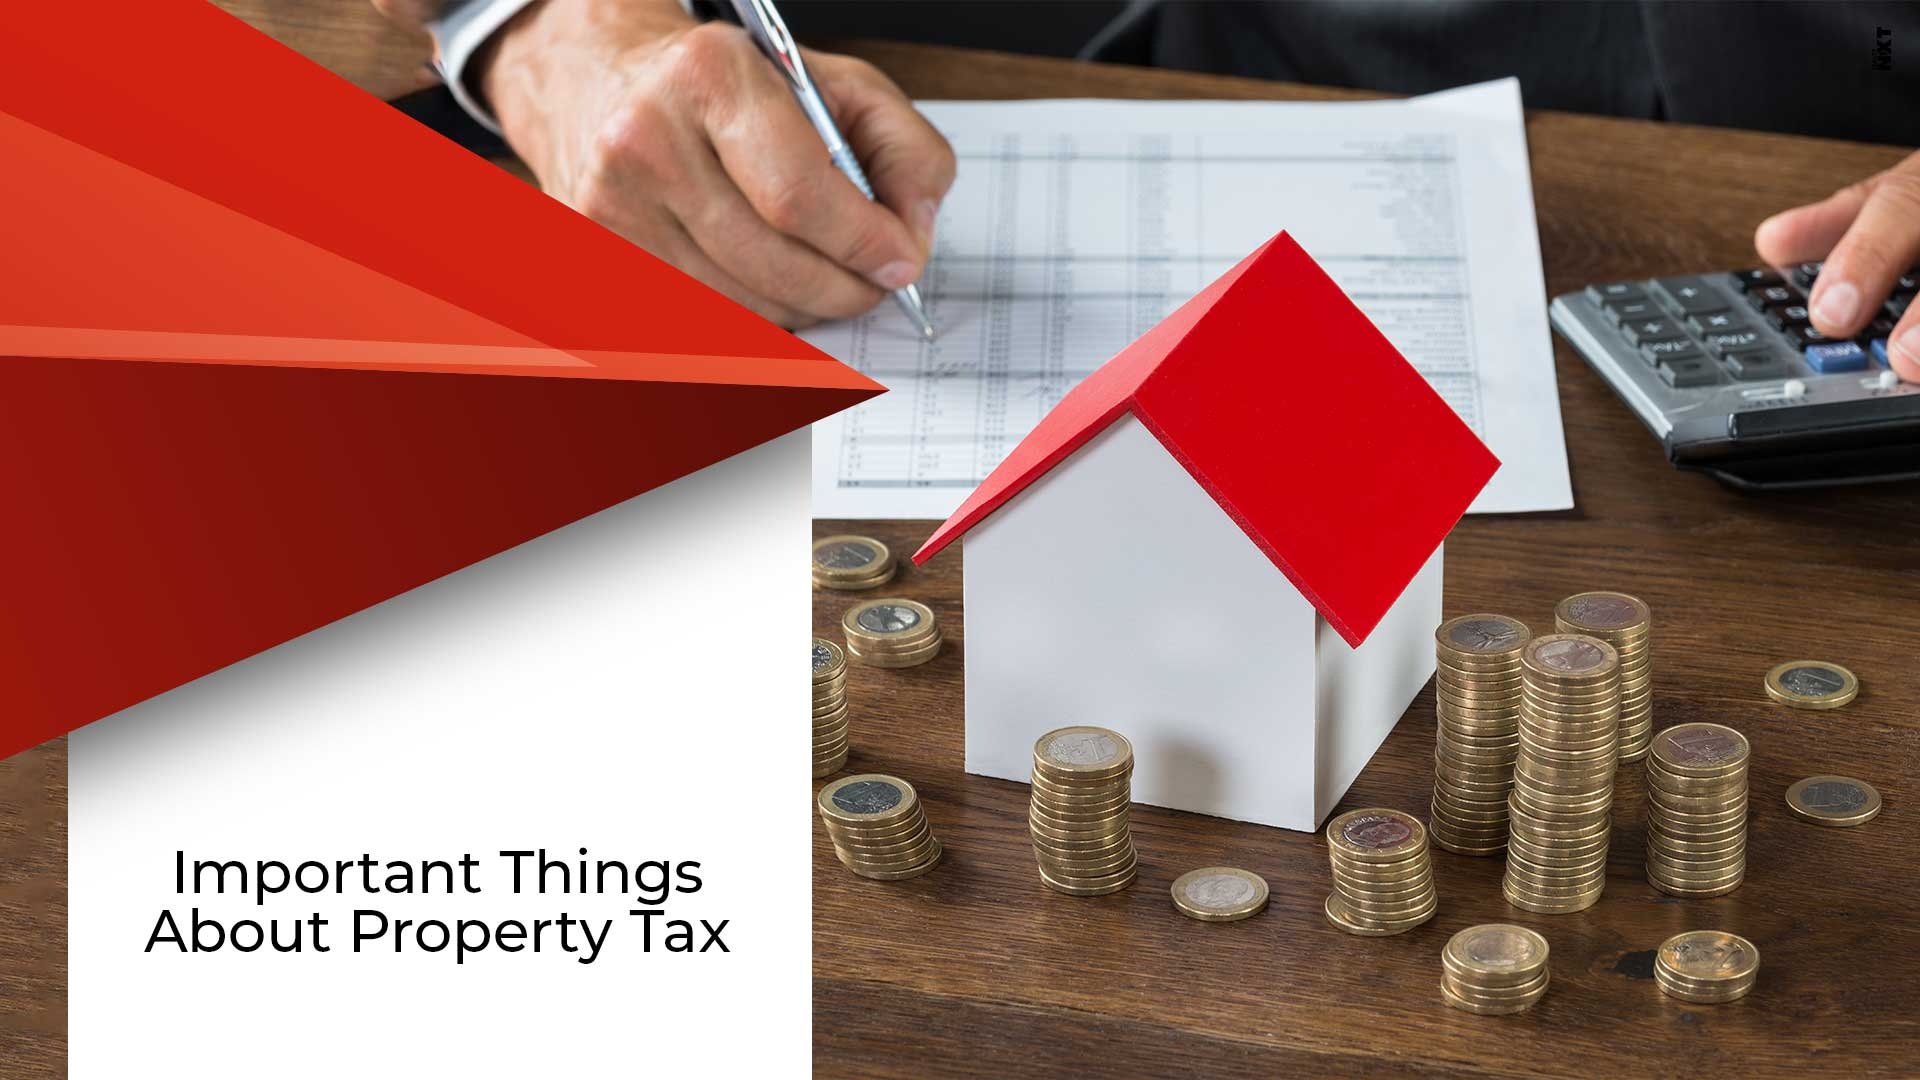 All You Need To Know About Property Tax